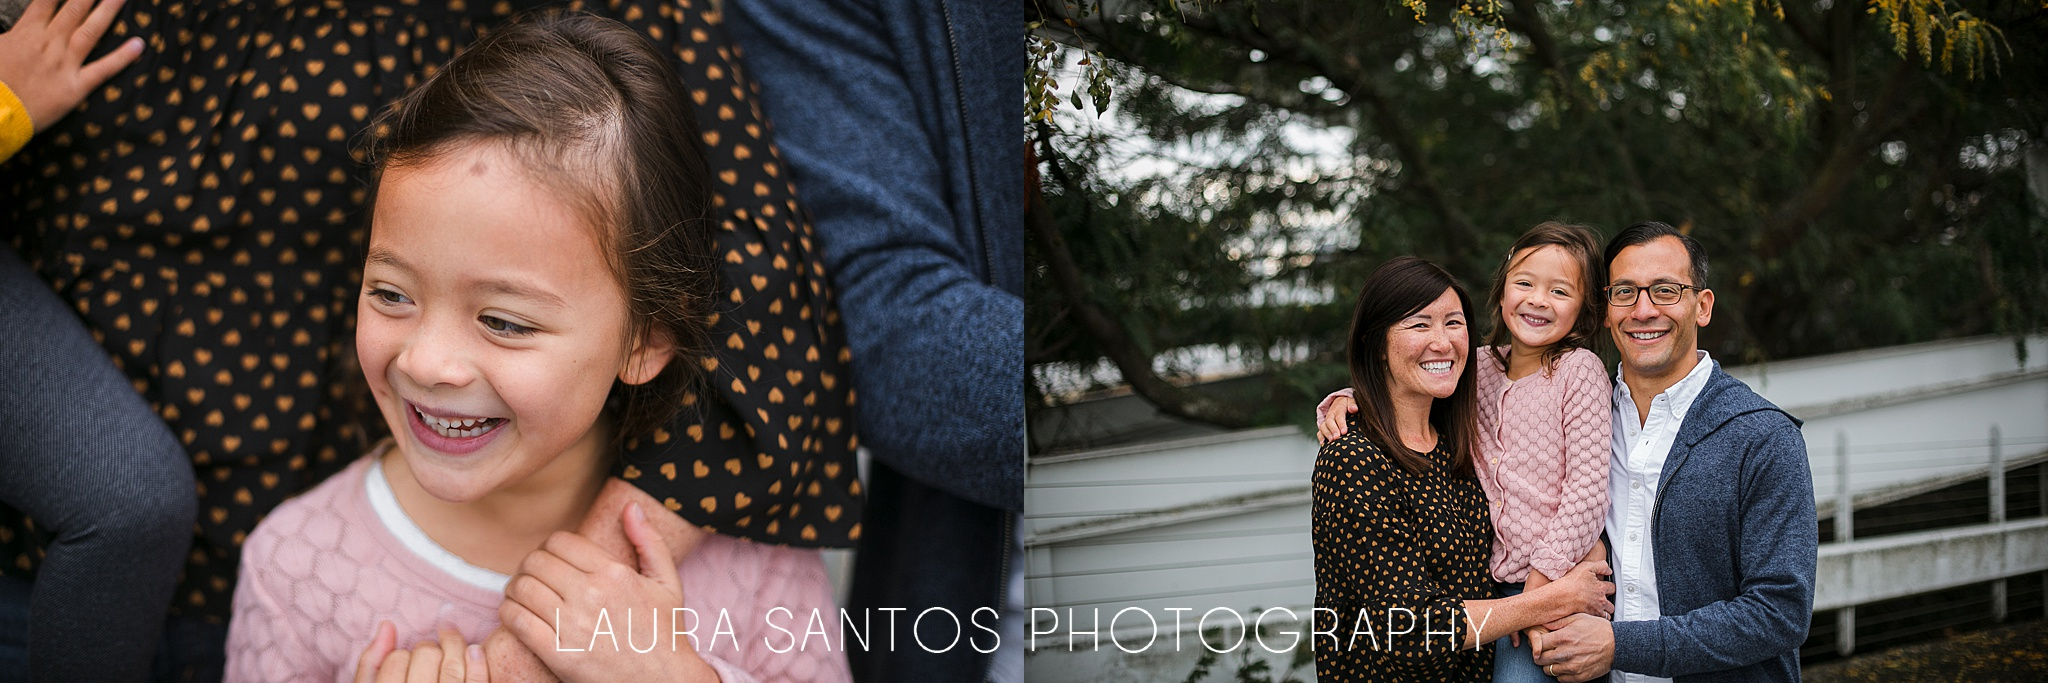 Laura Santos Photography Portland Oregon Family Photographer_0884.jpg